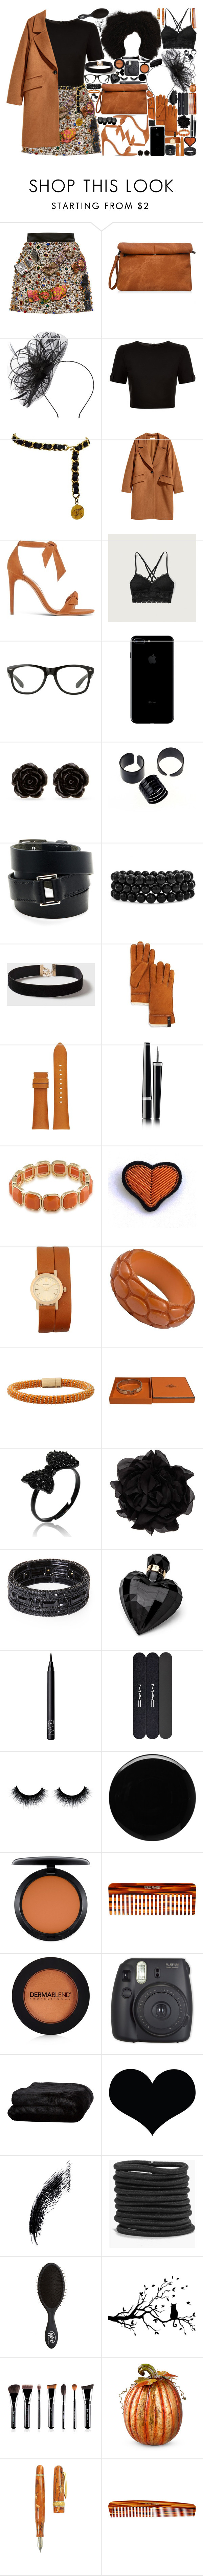 """""""Trendy trendsetter"""" by kam4beautyy ❤ liked on Polyvore featuring Dolce&Gabbana, Ted Baker, Chanel, Alexandre Birman, Abercrombie & Fitch, Erica Lyons, Hermès, Bling Jewelry, Dorothy Perkins and UGG"""